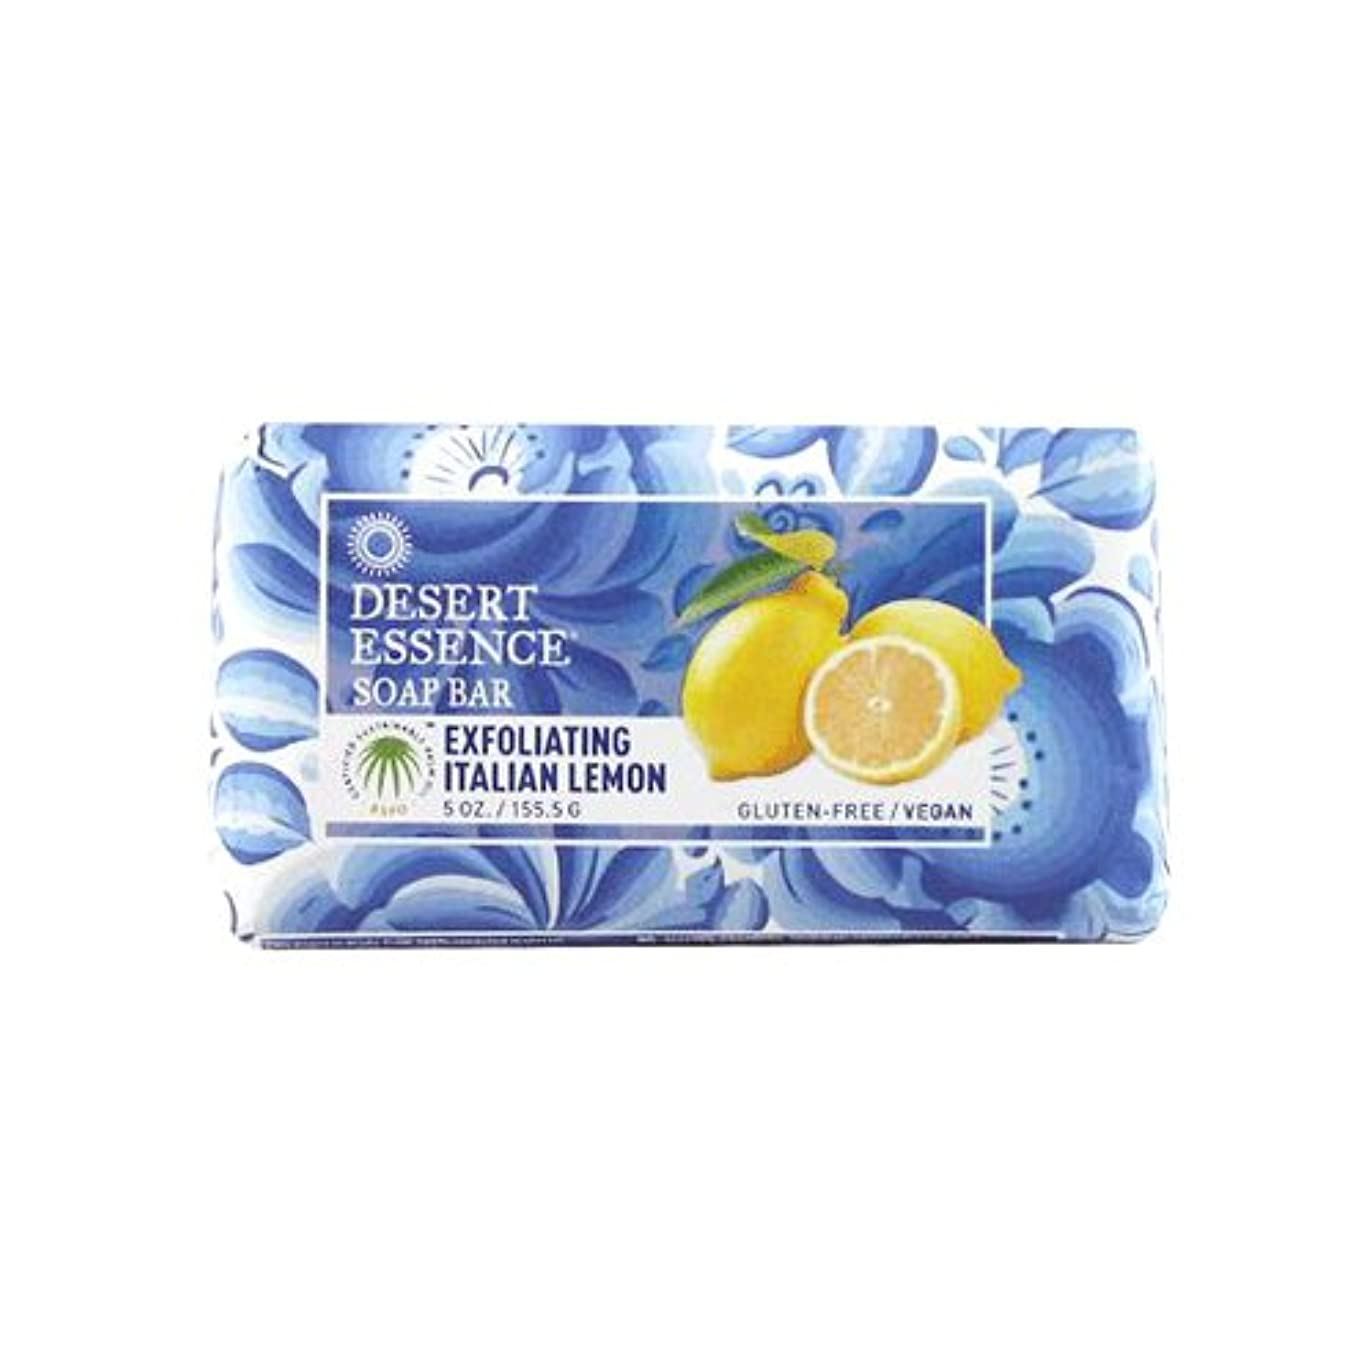 隔離ハイキング仮説Desert Essence Bar Soap - Exfoliating Italian Lemon - 5 oz